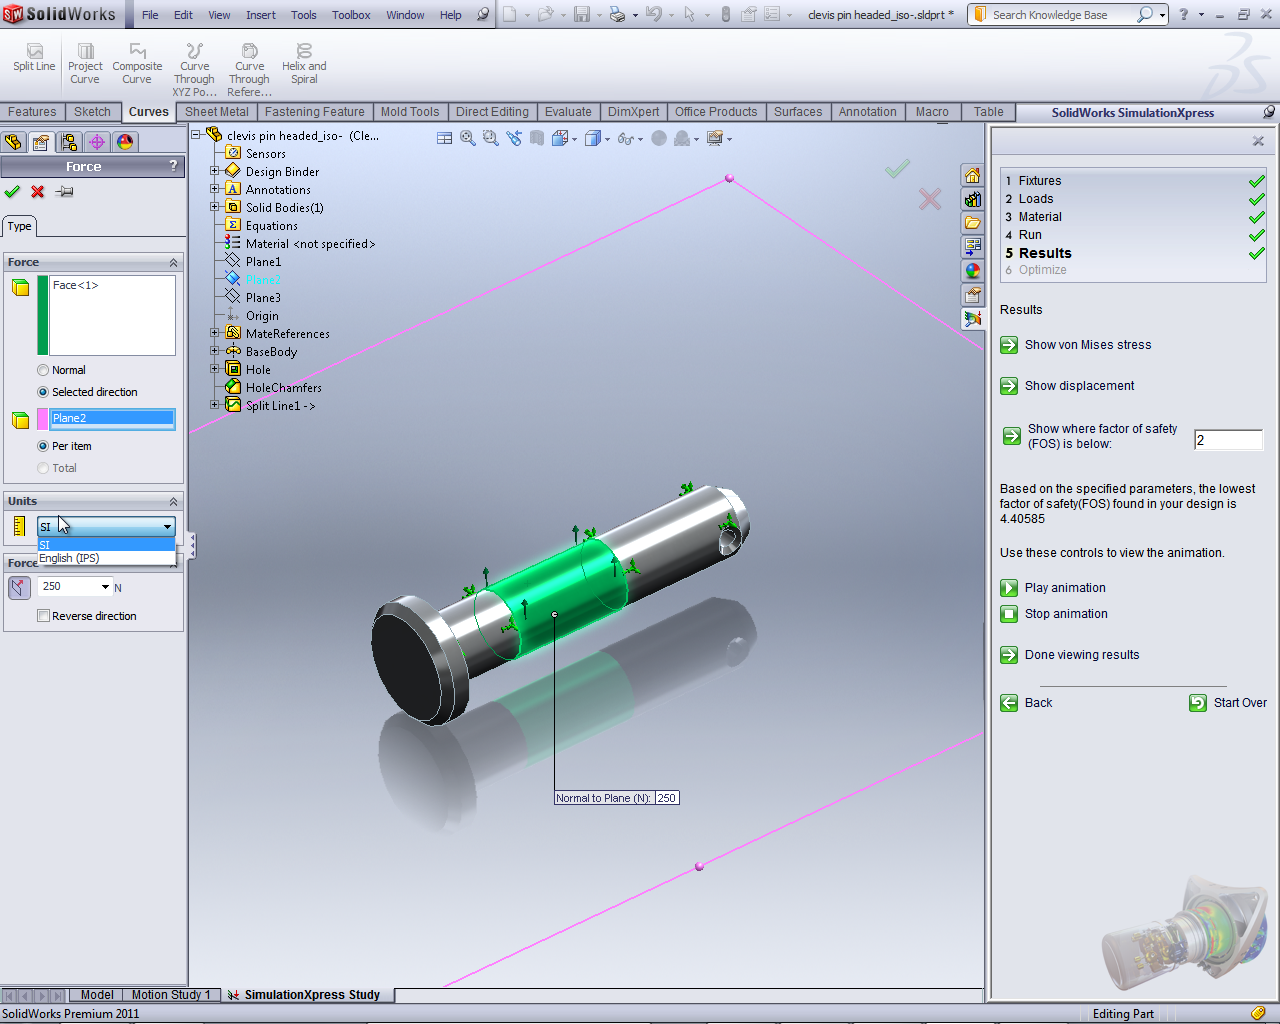 TechniCom tests (Part 4) – Inventor's digital prototyping vs